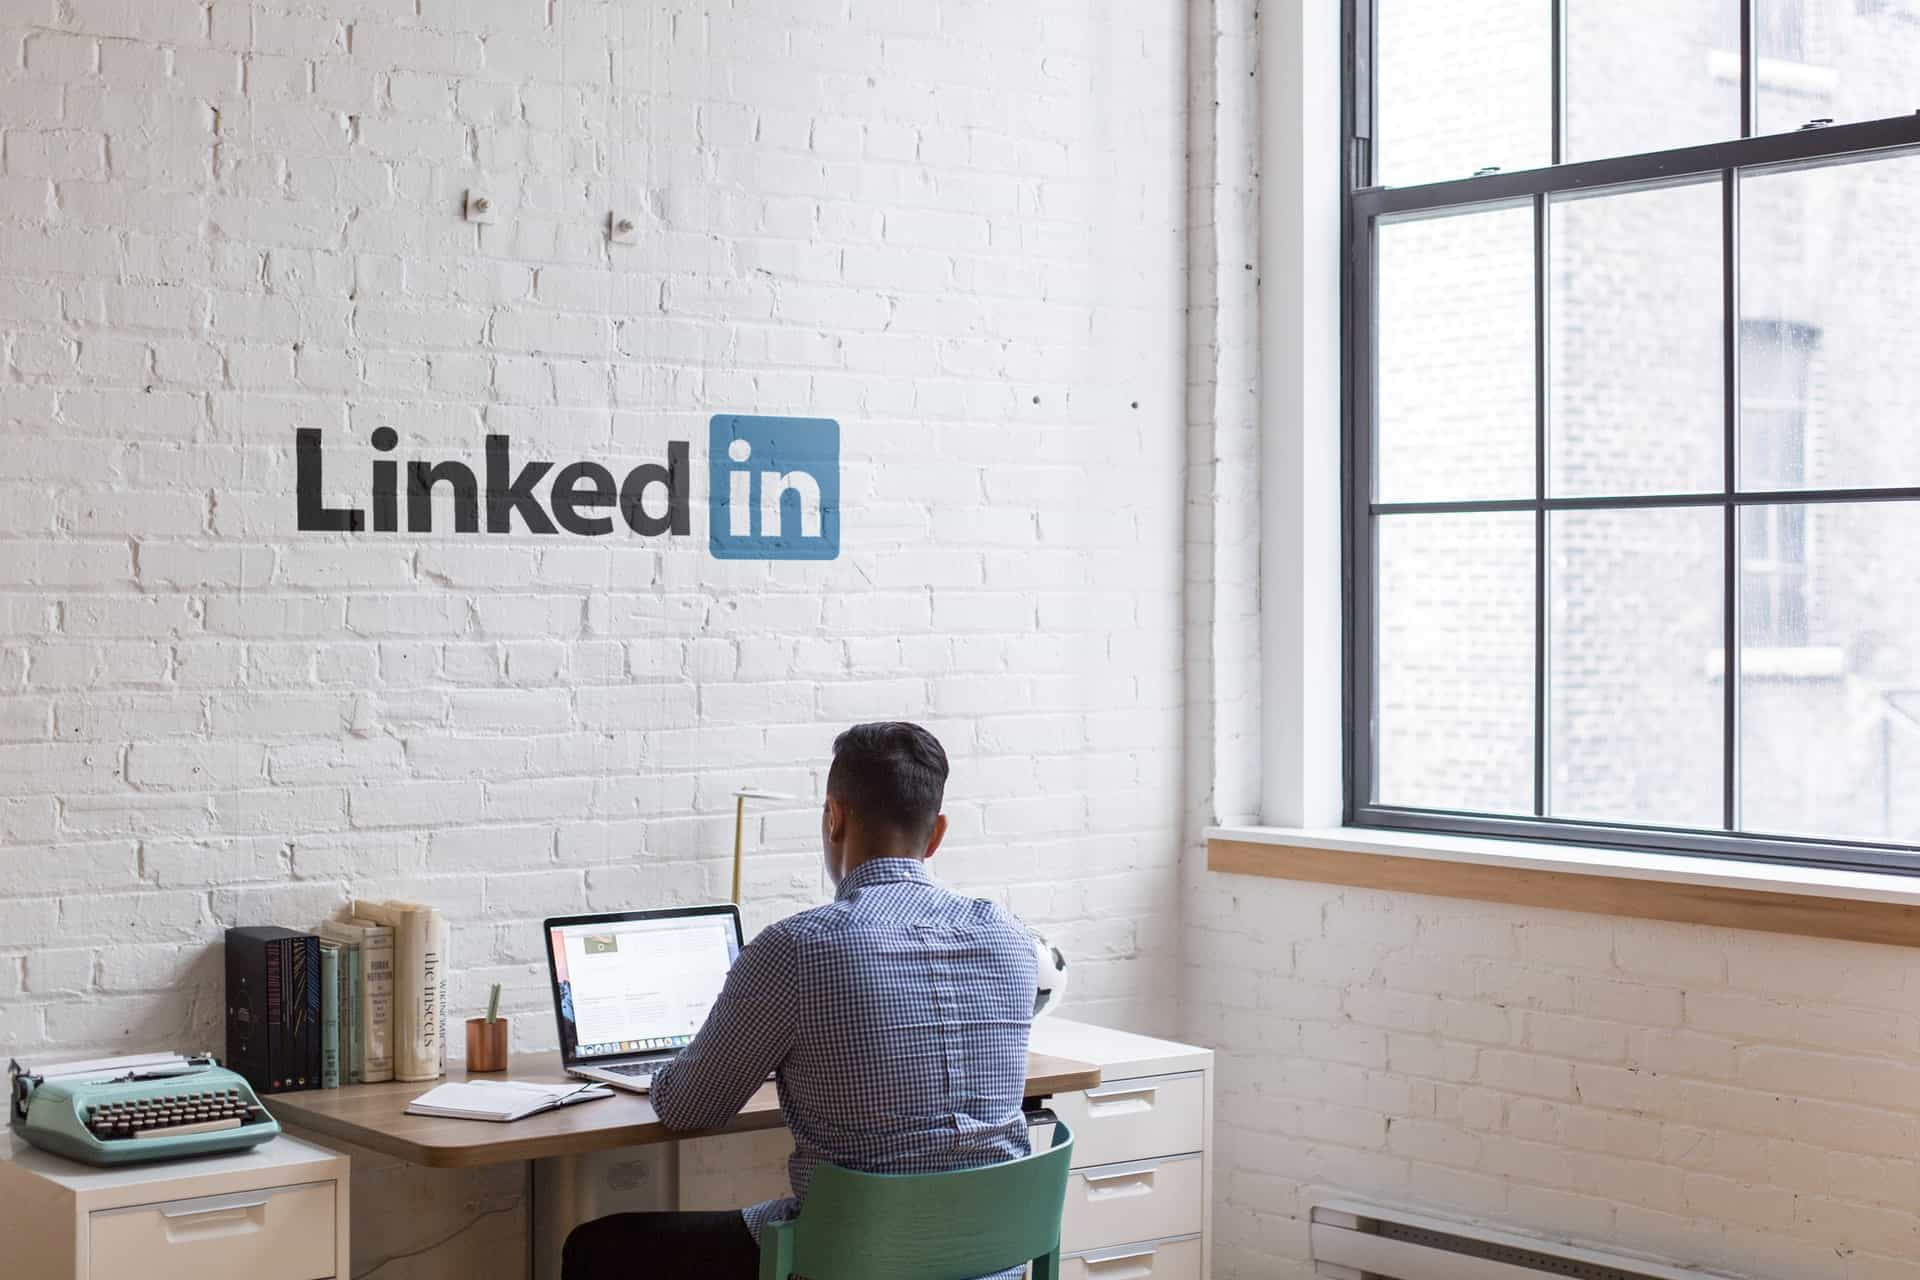 linkedin advantages disadvantages